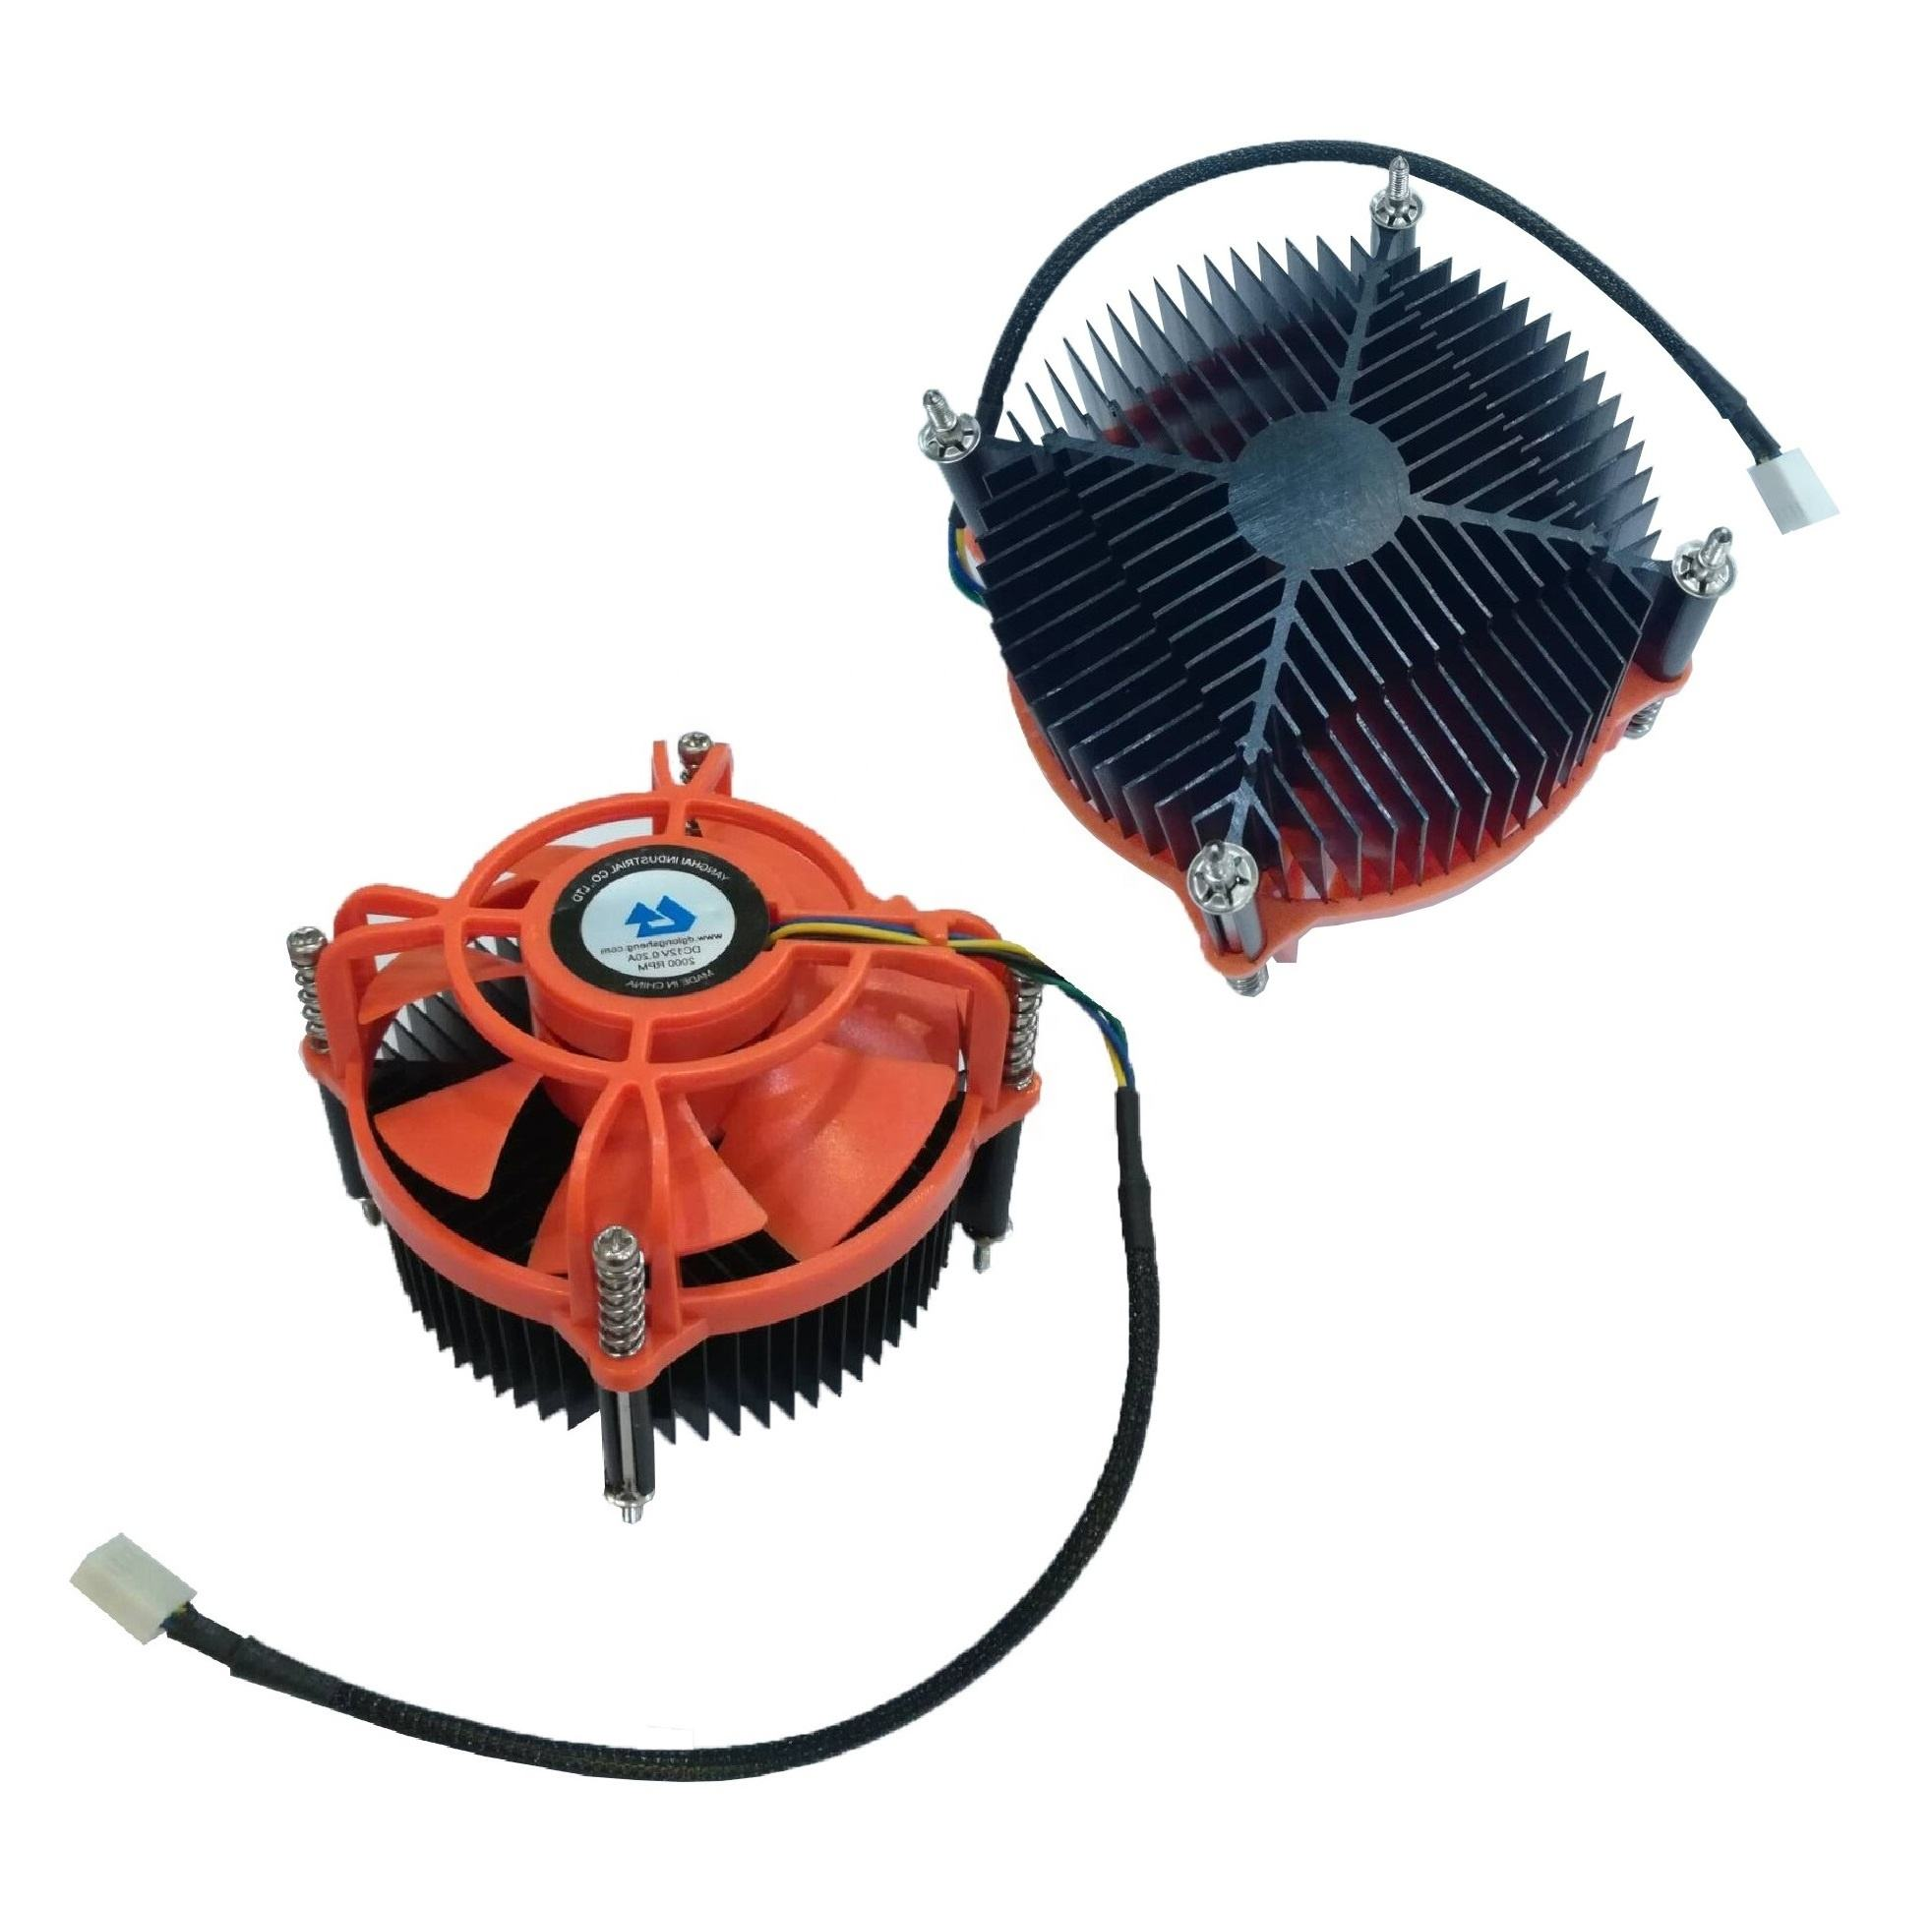 Intel socket alloy heatsink 90mm fan 12v dc cpu cooler fans cooling Computer Case Application OEM manufacturer silent